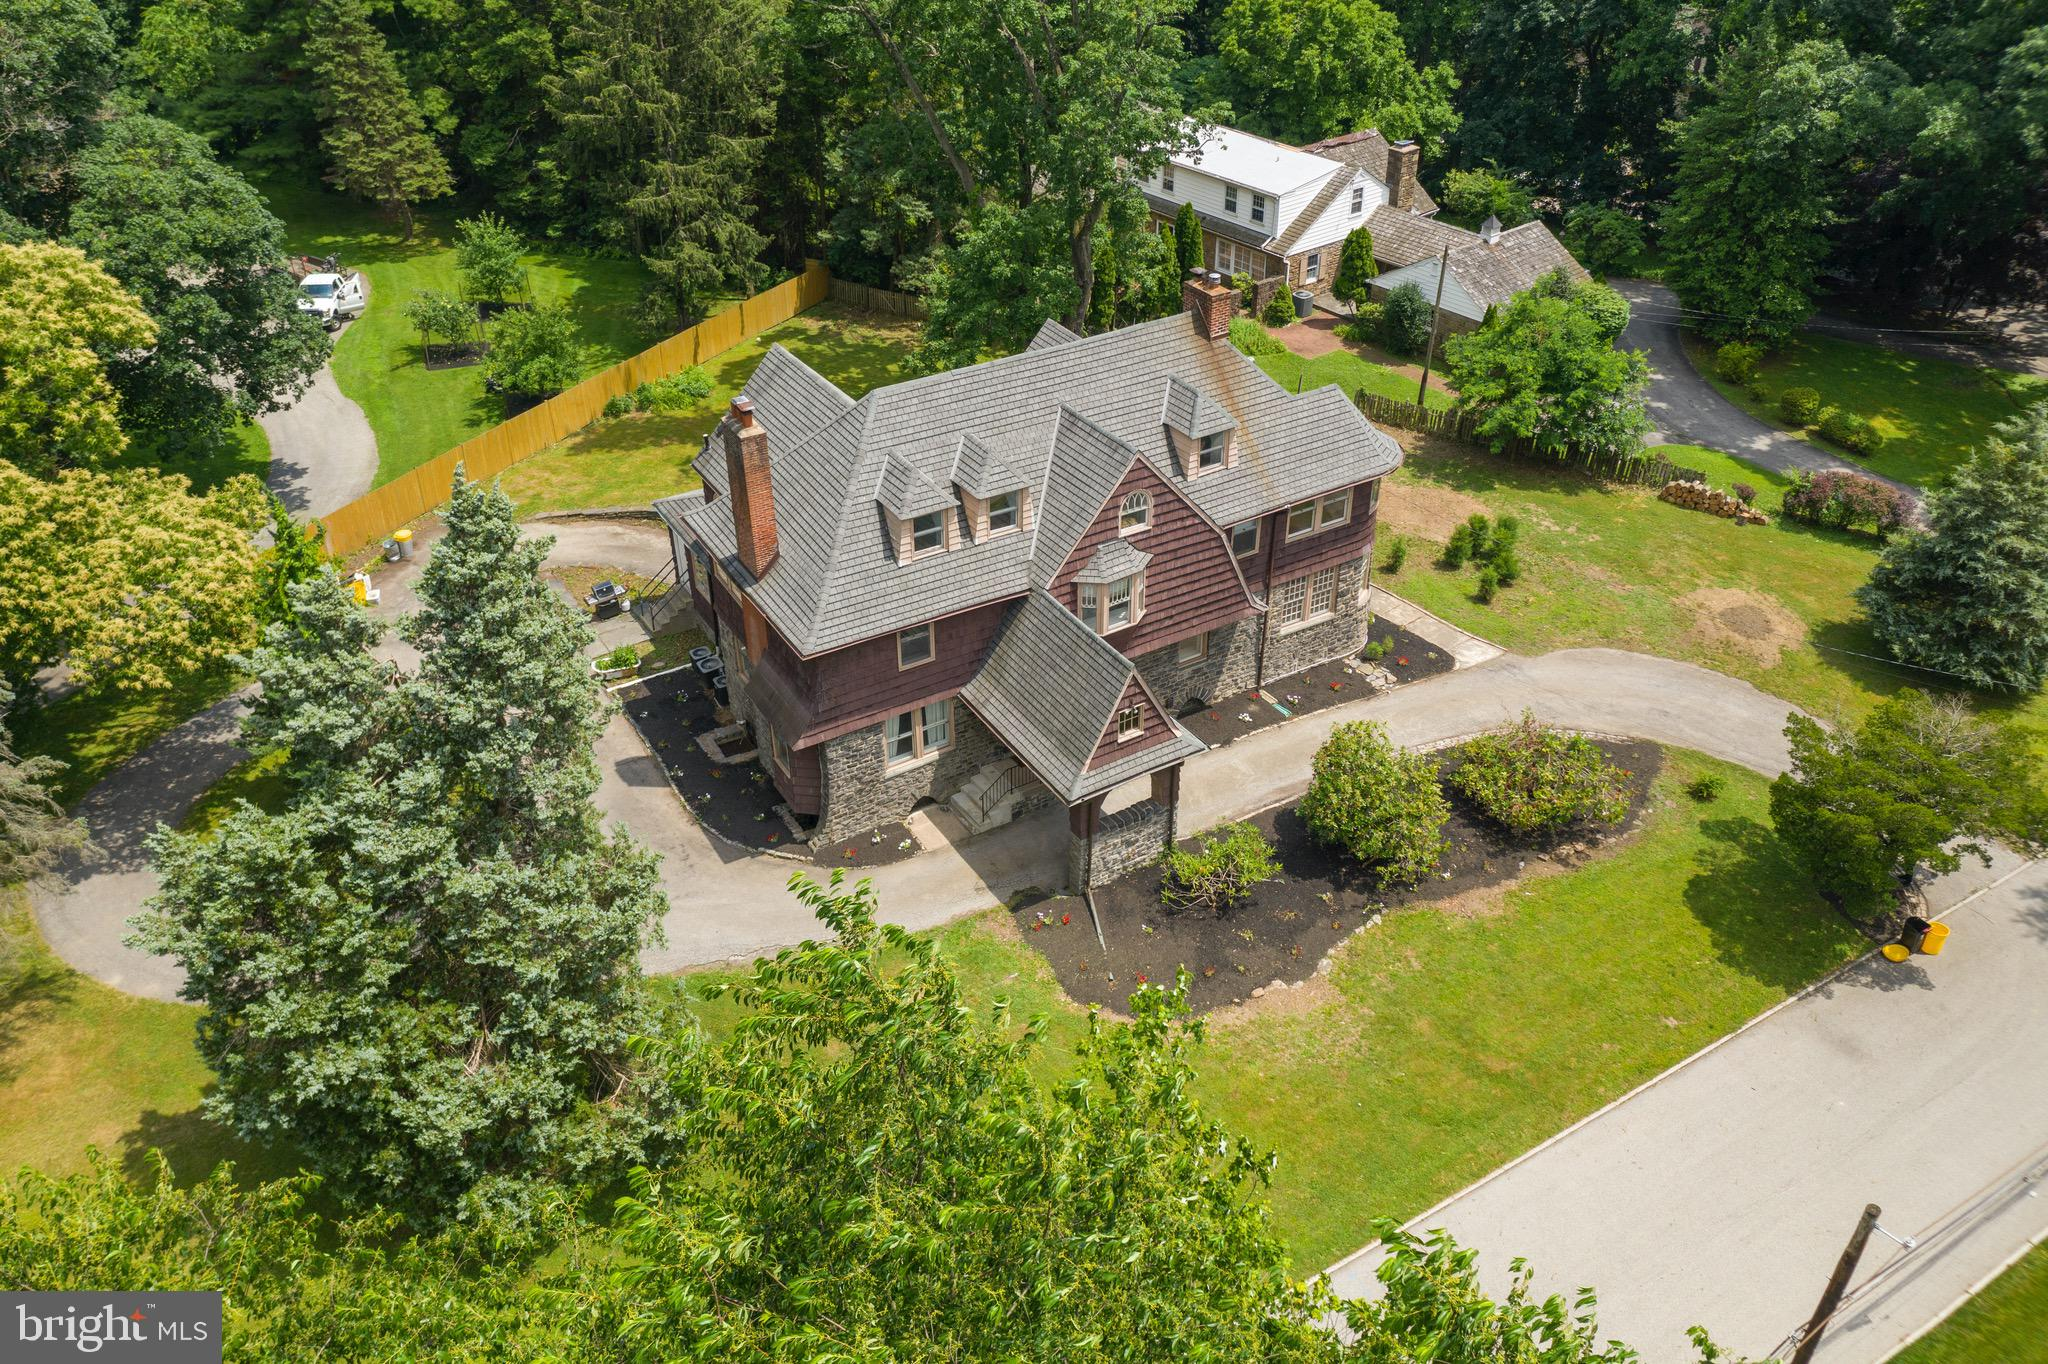 OPPORTUNITY KNOCKS!!! Take advantage of this RARE OPPORTUNITY to update & make this STATELY 1865 STONE VICTORIAN MANOR HOME on a no-through CUL-DE-SAC street  & PRIVATE & SERENE .79 ACRE FLAT LOT your own... Prominently set back from the road with a long circular driveway in the WALKABLE Community of Bala Cynwyd / Lower Merion Township you are steps to AWARD WINNING Belmont Hills Elementary School, Township Park (baseball, basketball, playground, Library & Belmont Hills Pool!) . This impressive home boasts 4600 + square feet of living space on 3 floors w/ 6 bedrooms & 4 baths. Built at a time when Artisan Craftsman took great pride in their work, this STONE HOME offers Character & DETAILS of a Bygone Era and OOZES w/ ELEGANCE!!! Grand Center Hall Entrance, Tall Ceilings, Beautiful Flared Staircase w/ original Stained Glass Window over the Landing, abundant Wainscoting, Mouldings, Wide Baseboards, Plaster Walls, Original Doorknobs, Original Hardwood Floors w/ intricate inlay +++. This Amazing Home offers the perfect setting for Intimate Family Gatherings & Grand Scale Entertaining. This home has been thoroughly enjoyed for the last 11 years by the current owner who has added some thoughtful updates including: NEW ROOF (2010), NEW AIR CONDITIONING (2010), 3rd Floor Laundry (2010), NEW CARRARA MARBLE MASTER BATH (2010), 3rd Floor Bath & PowderRoom renovation (2011). The house will be sold in its current (as-is) condition.   Bring your paintbrush & design ideas to make this INCREDIBLE PROPERTY your own -- Don't wait!!!